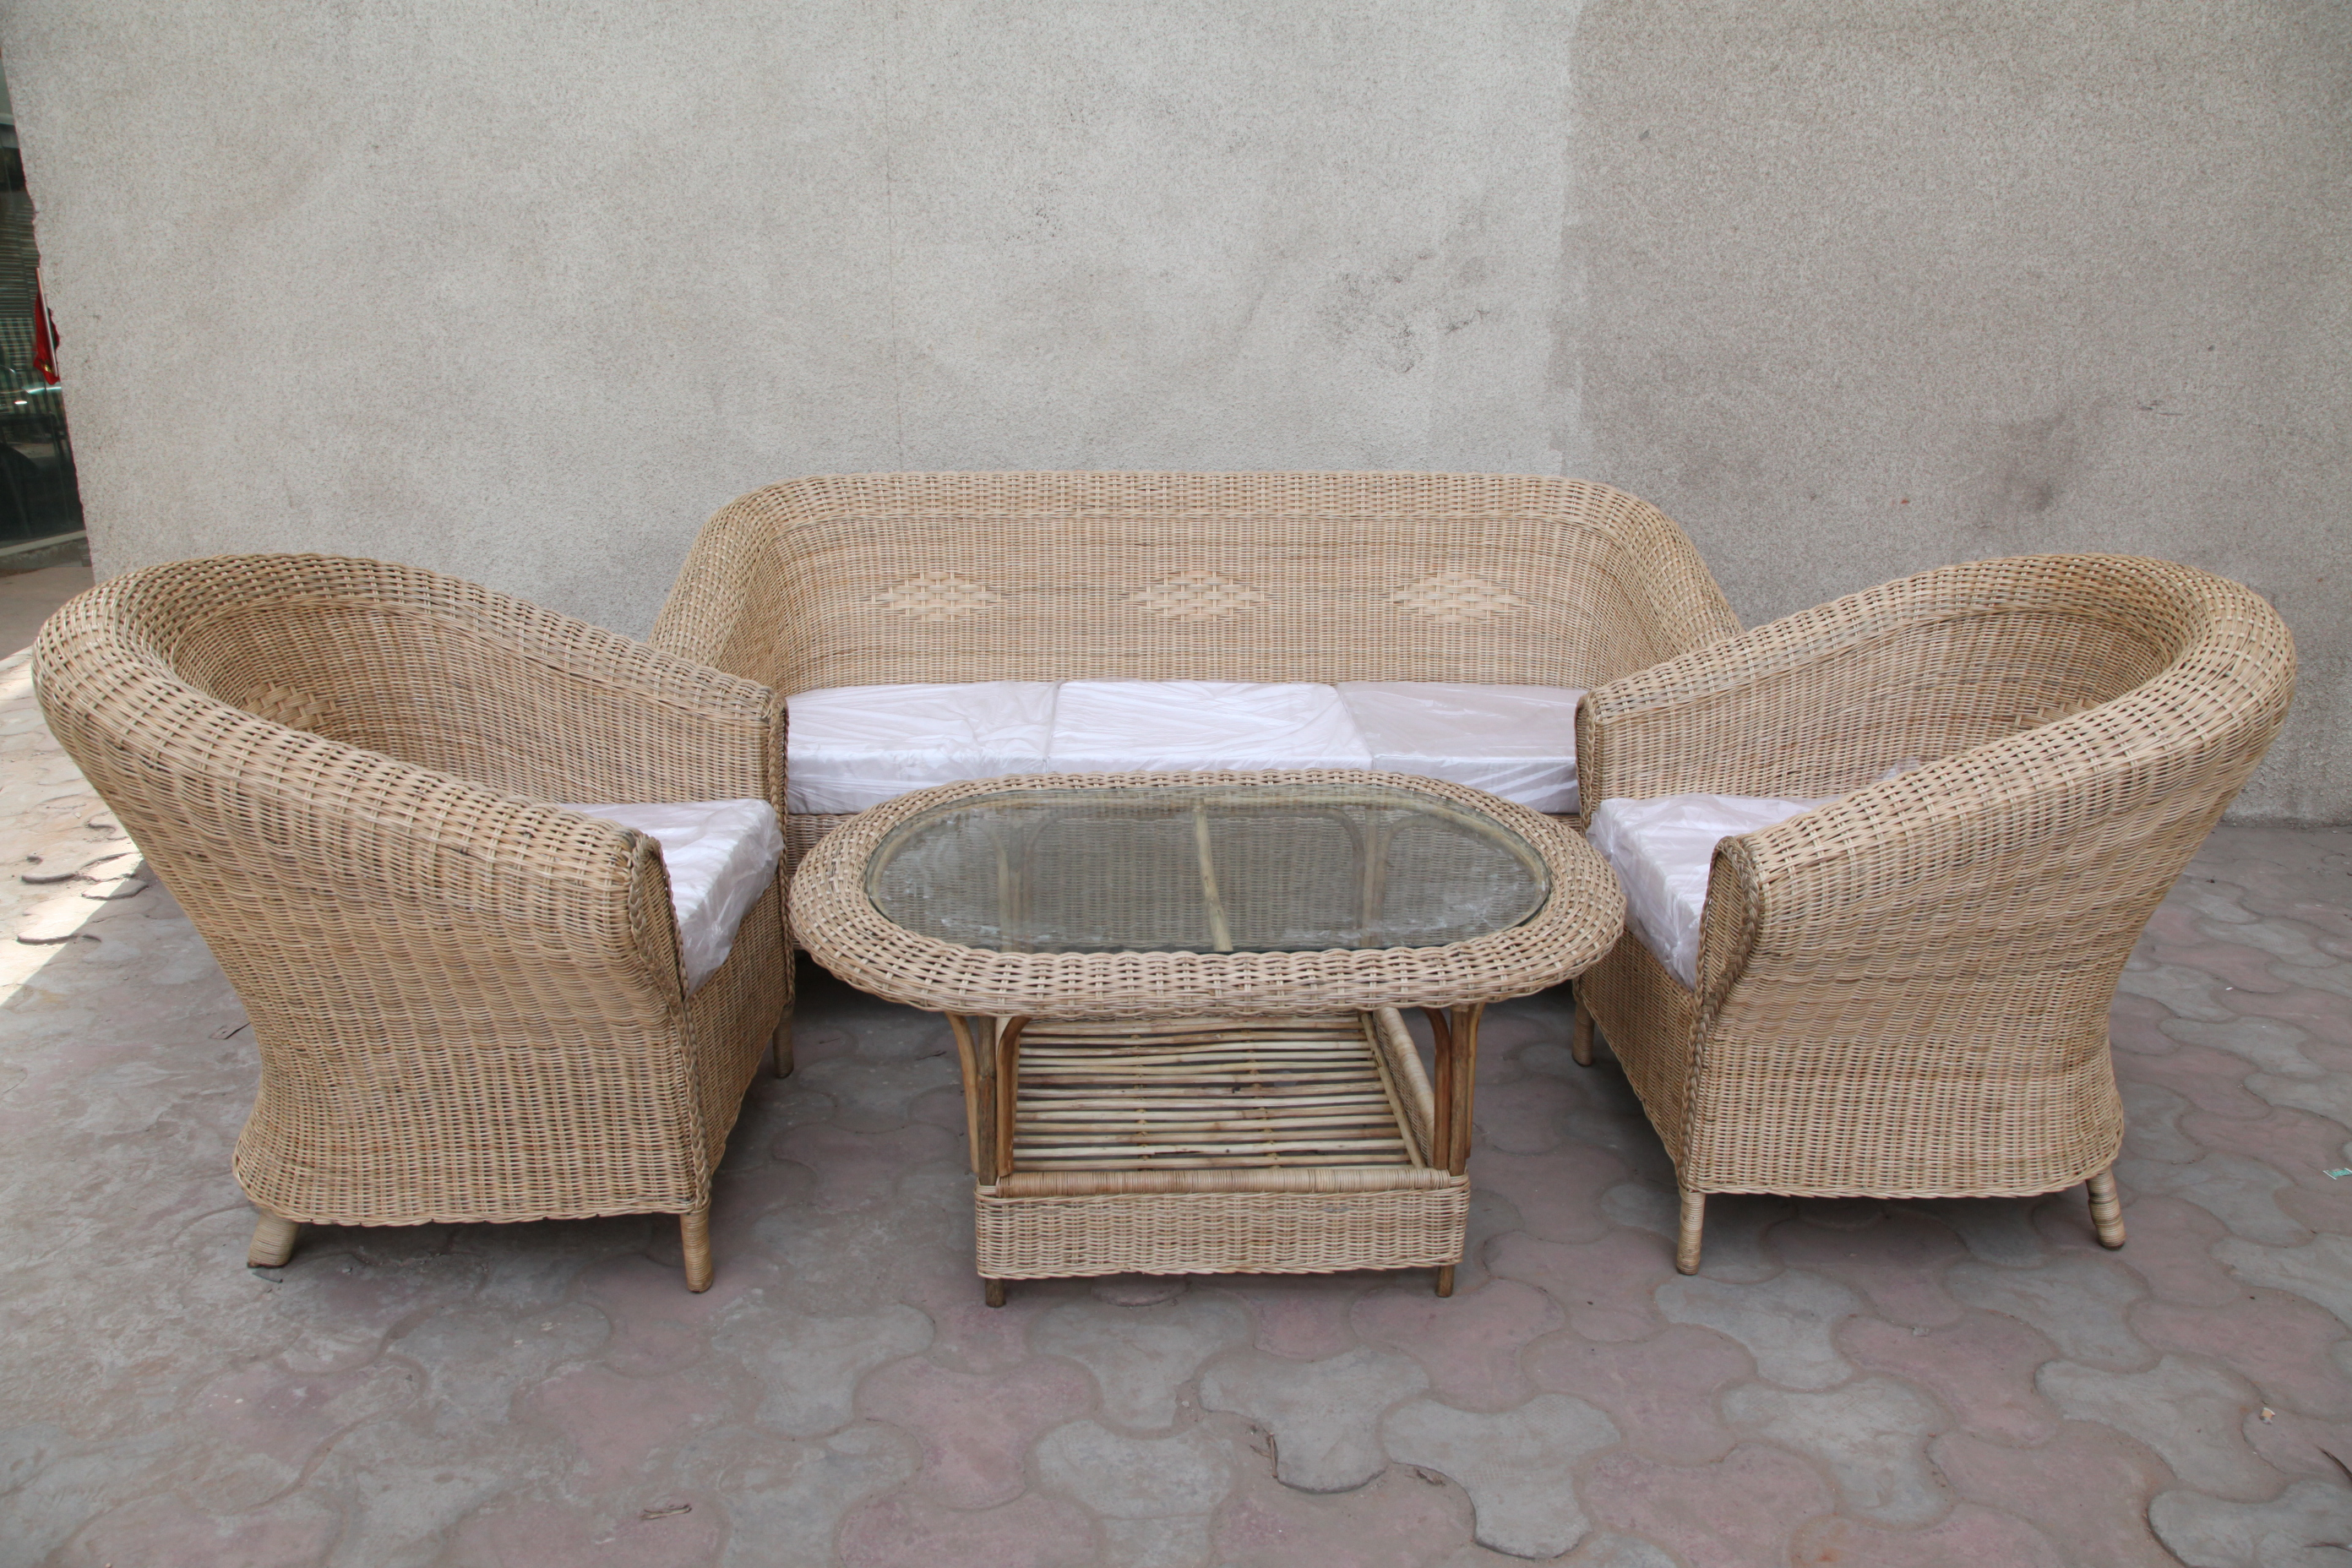 garden sofa set shiva garden shop - Garden Furniture Delhi